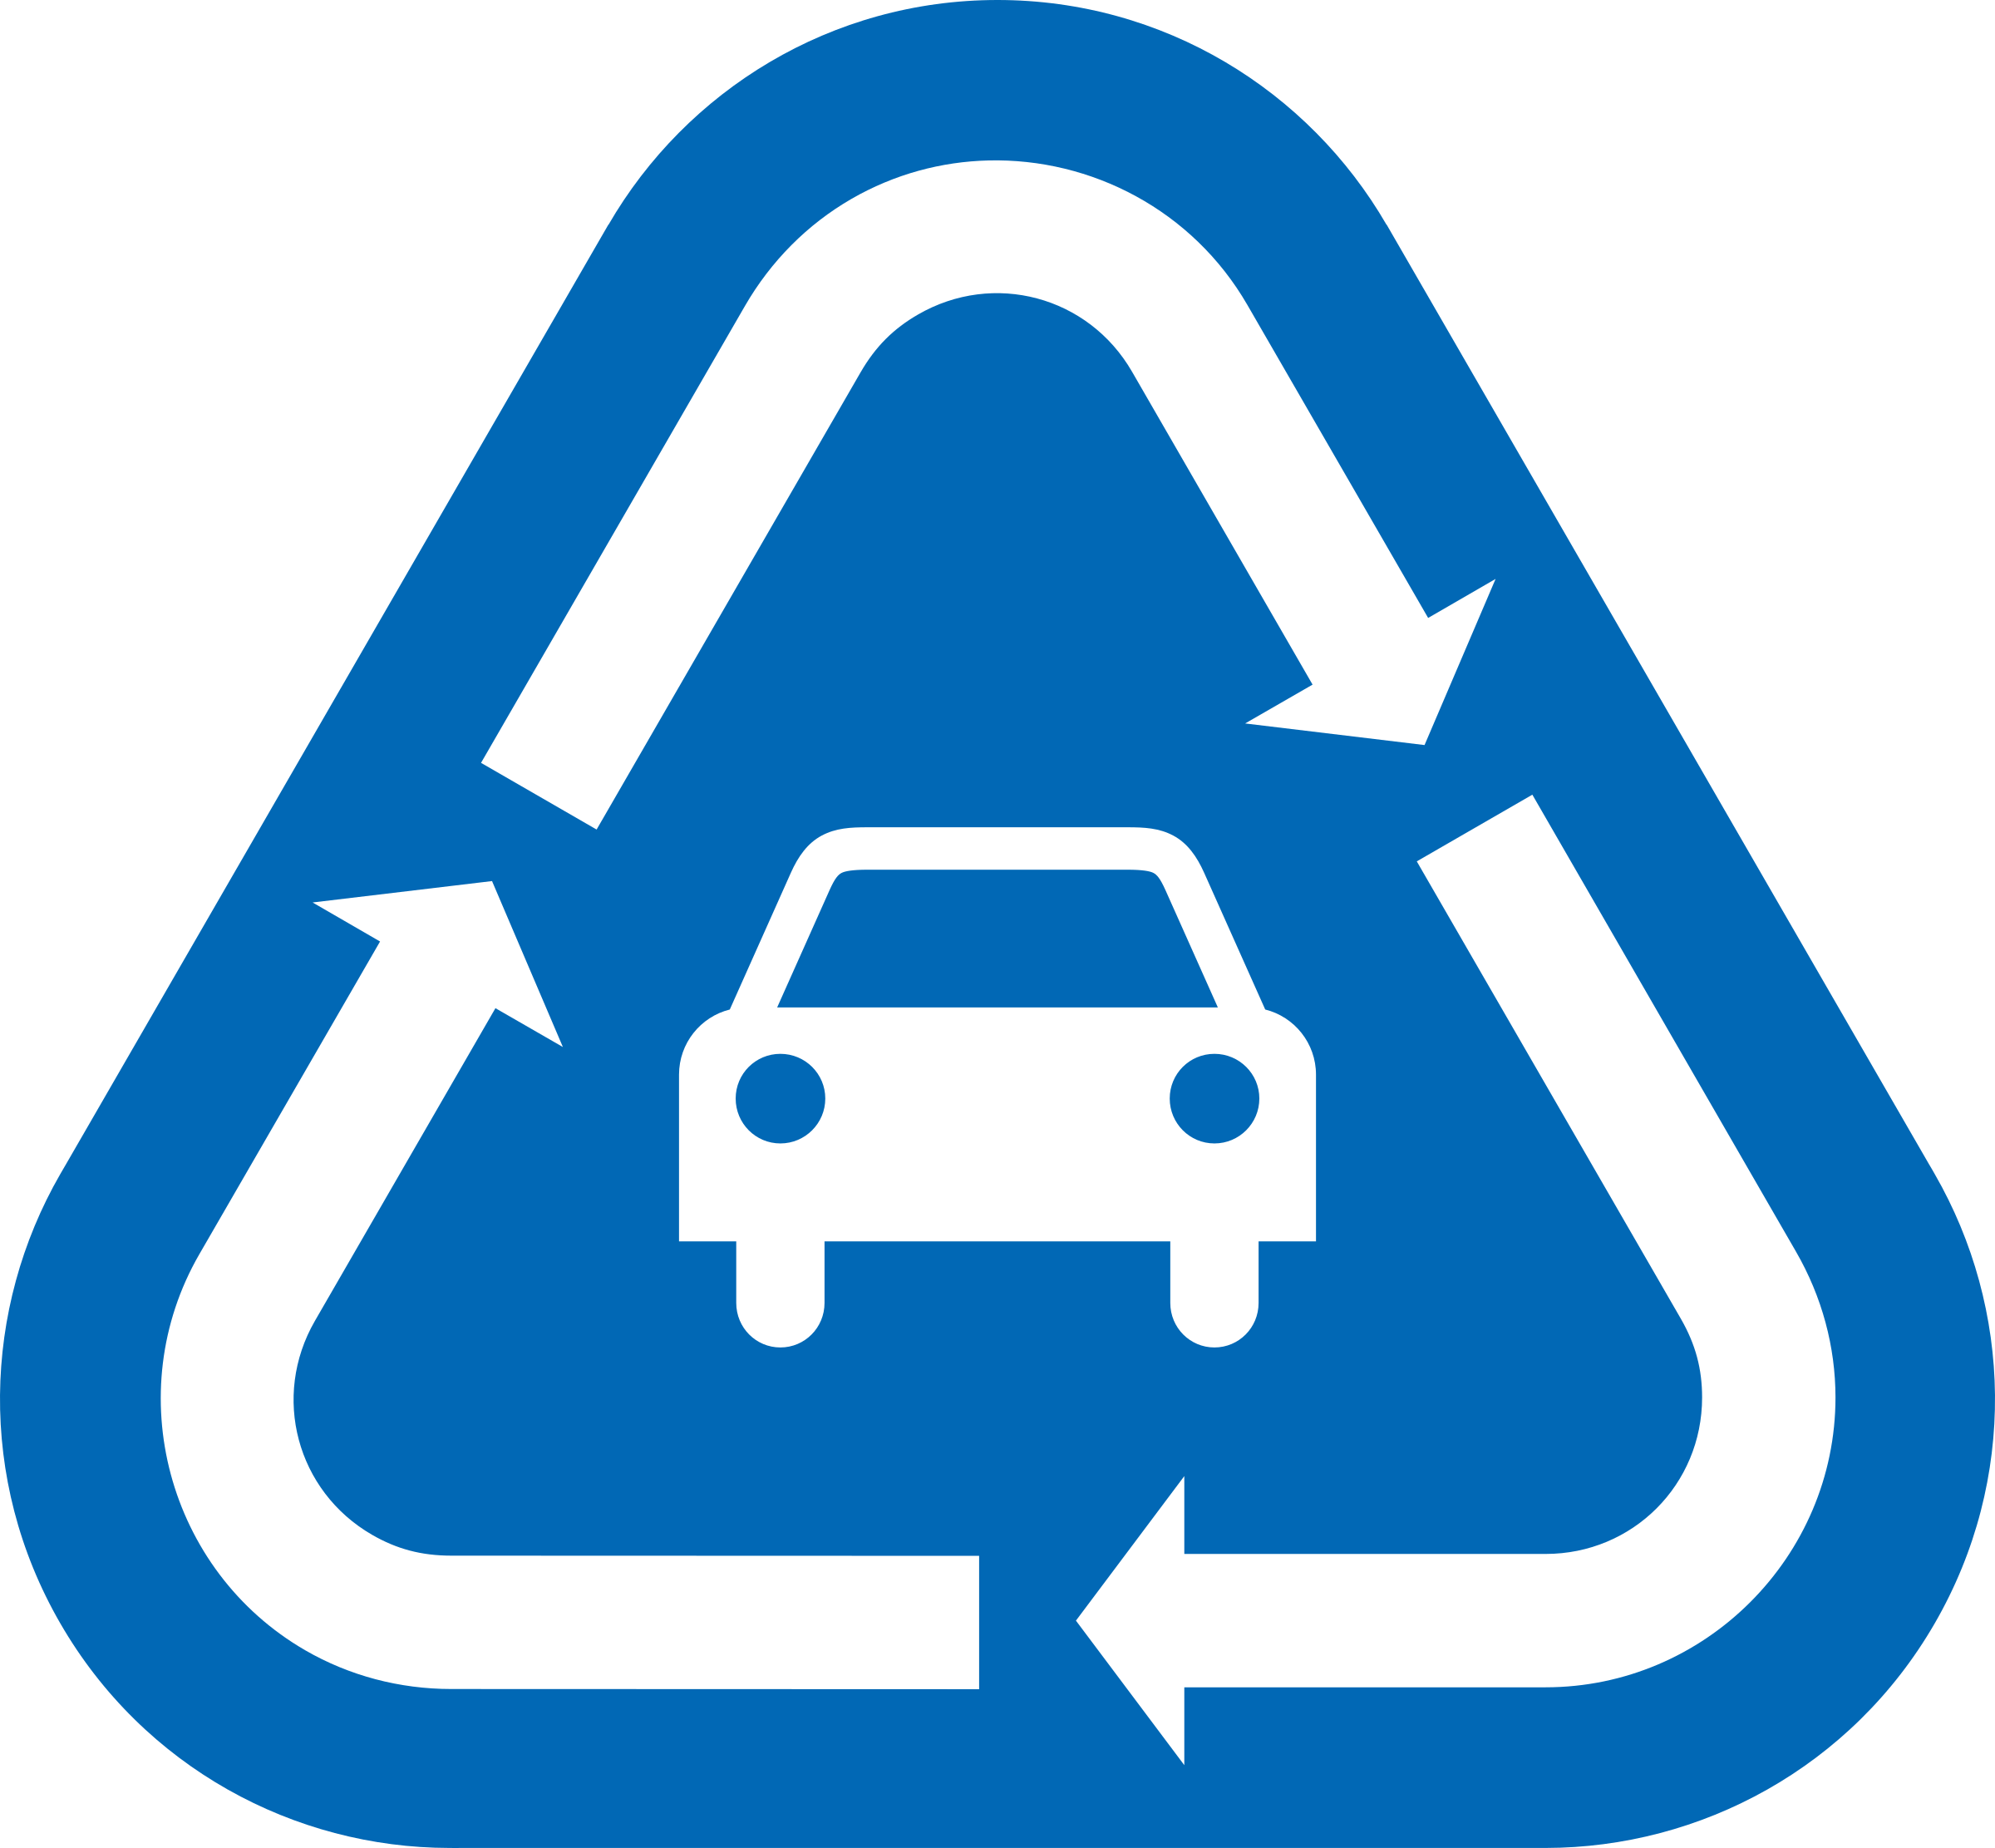 Car sign clipart royalty free Clipart - Scrappage of motor vehicles royalty free